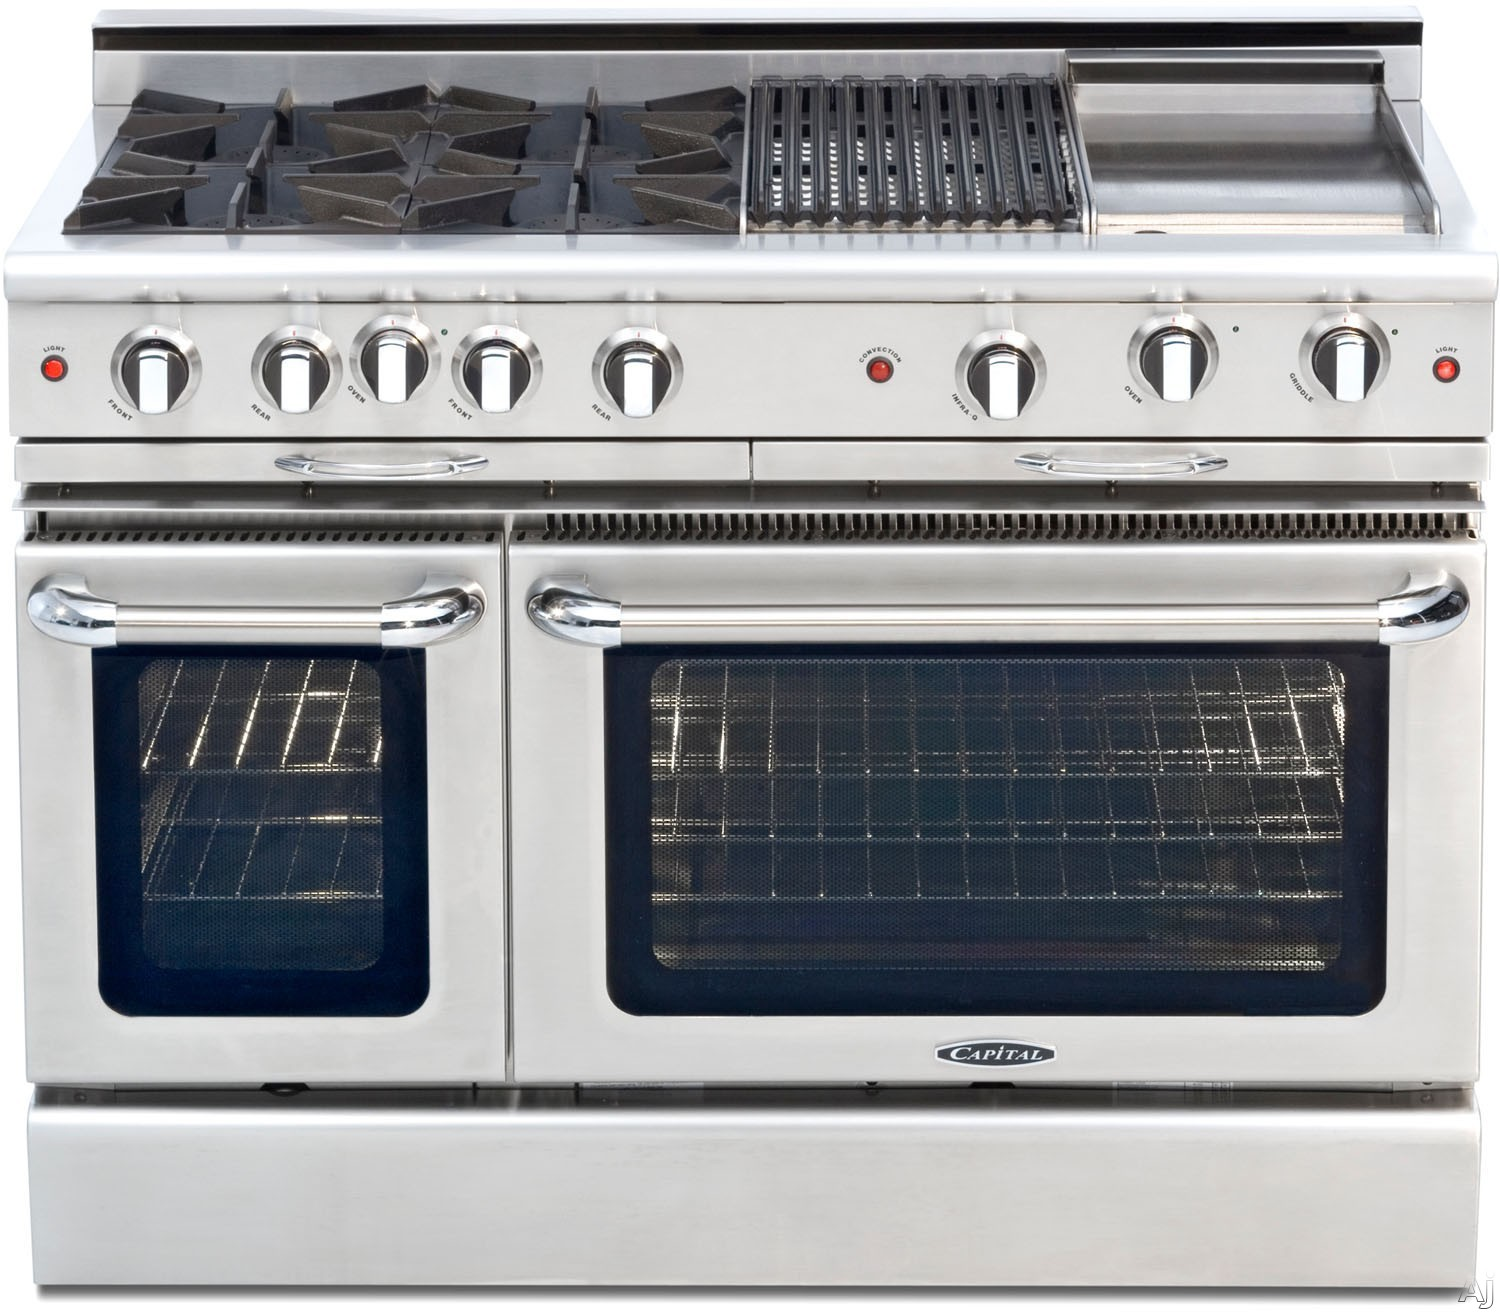 "CGSR484BG-N 48"""" Culinarian Series Freestanding Natural Gas Range with 6.9 cu. ft. Total Oven Capacity  12"""" Grill  6 Open Burners  and 12"""" Griddle  in Stainless"" 176033"